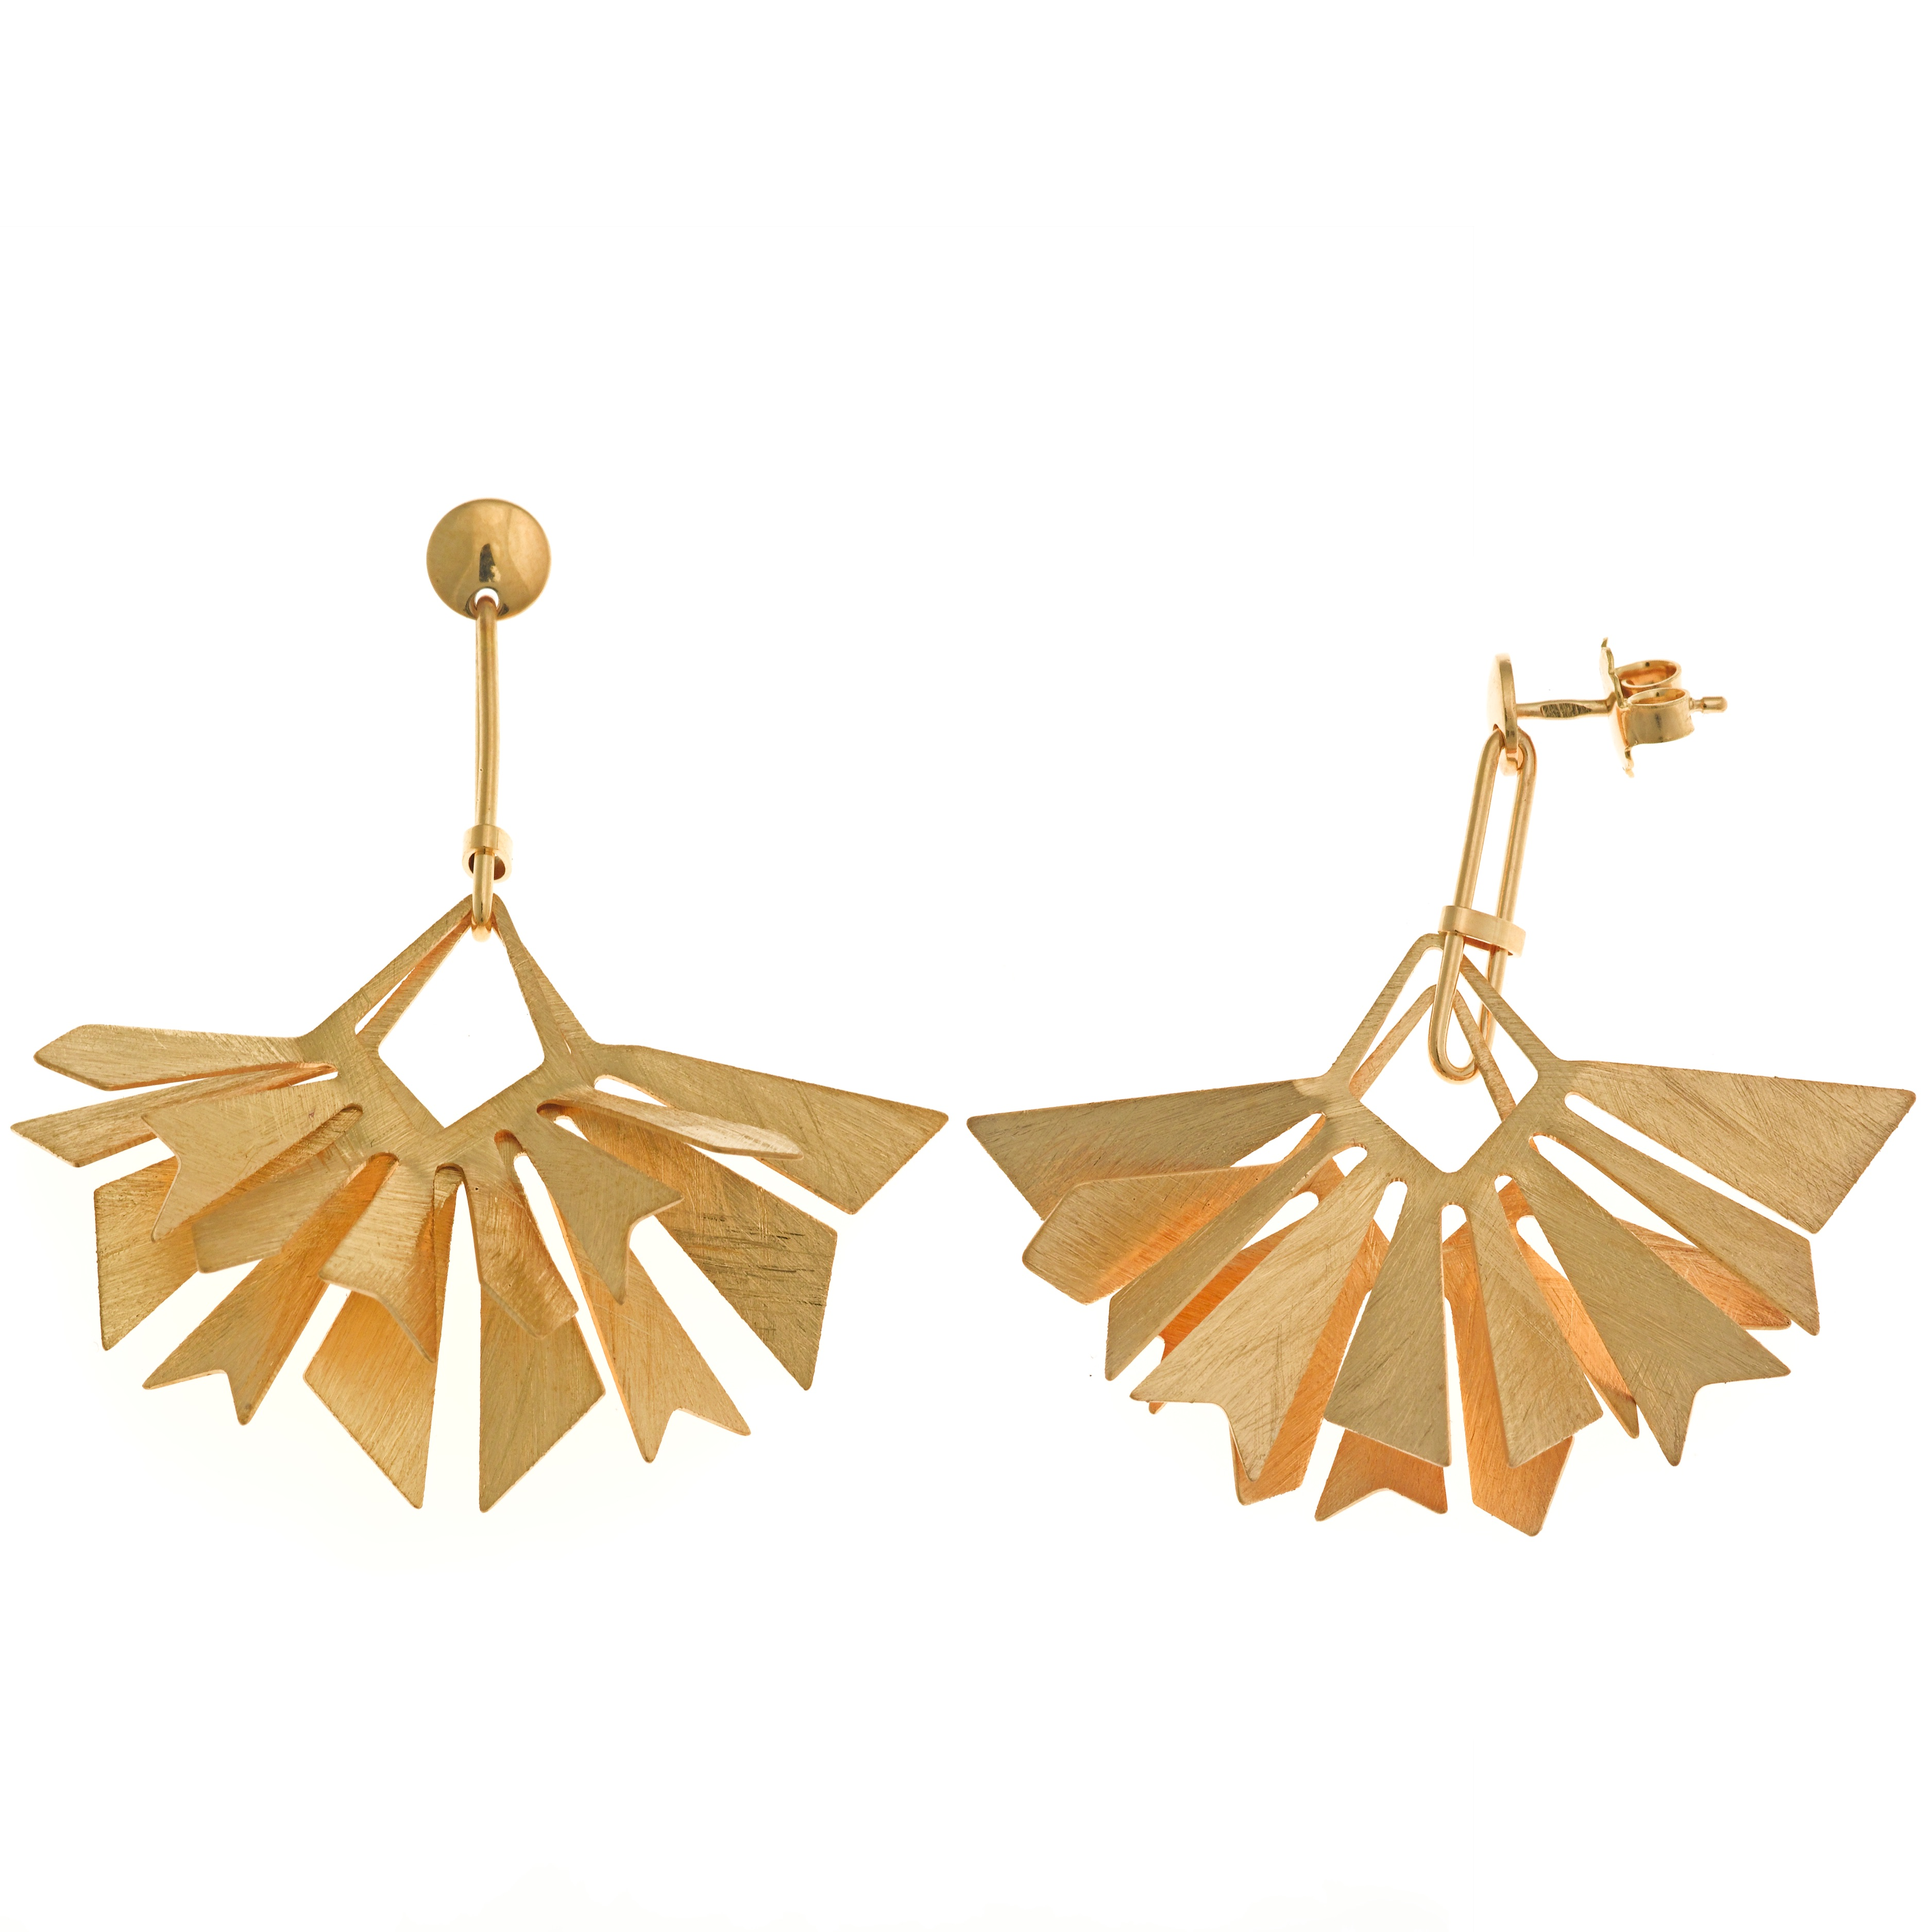 Salvatore Plata gold-pated earrings